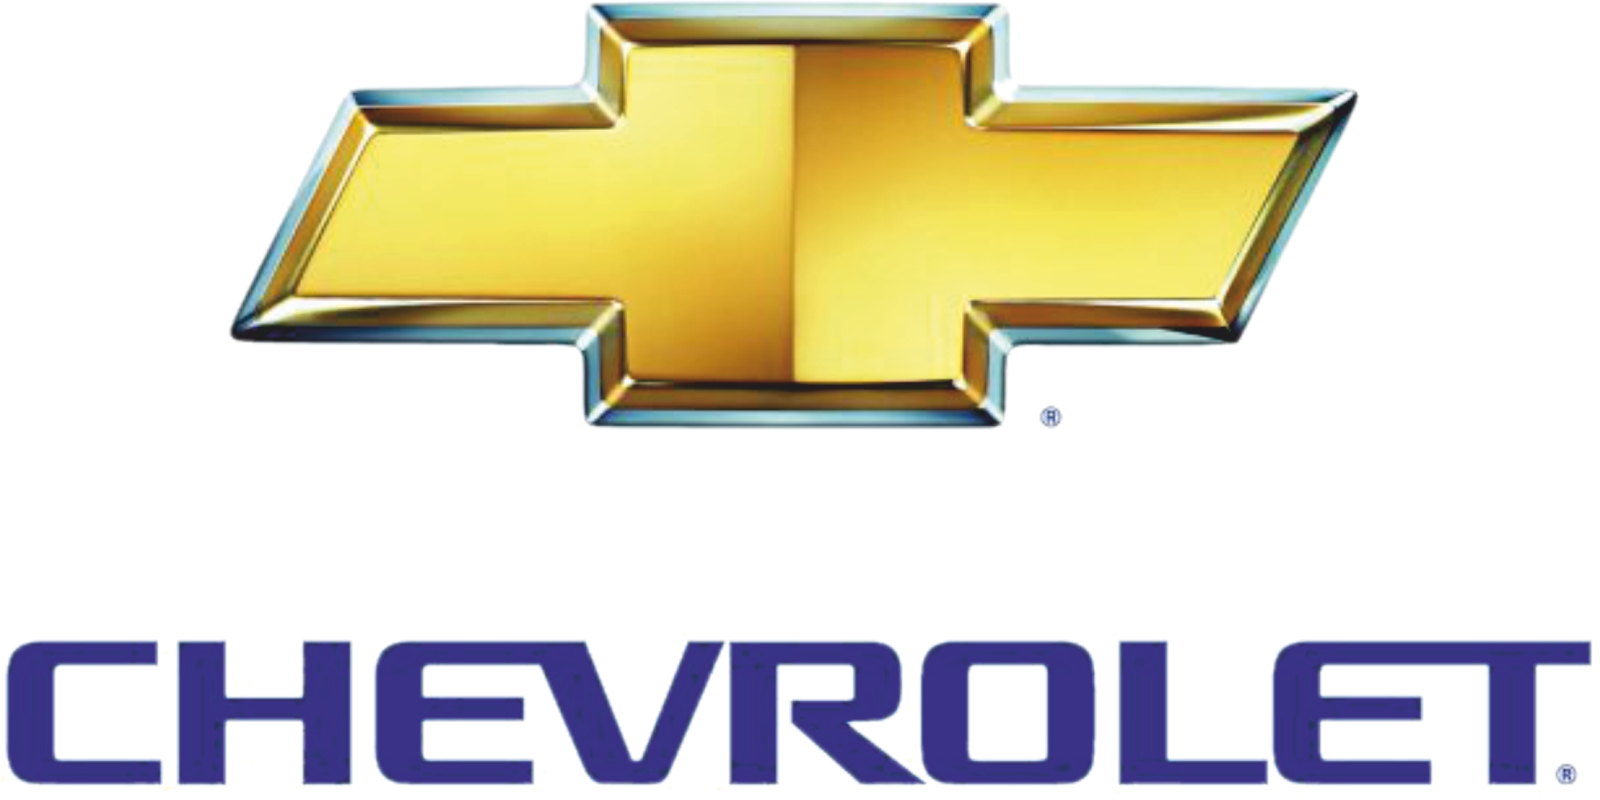 image for chevrolet logo vector 2015 wallpaper hd design rh pinterest co uk chevrolet logo vector download chevrolet logo vector 2017